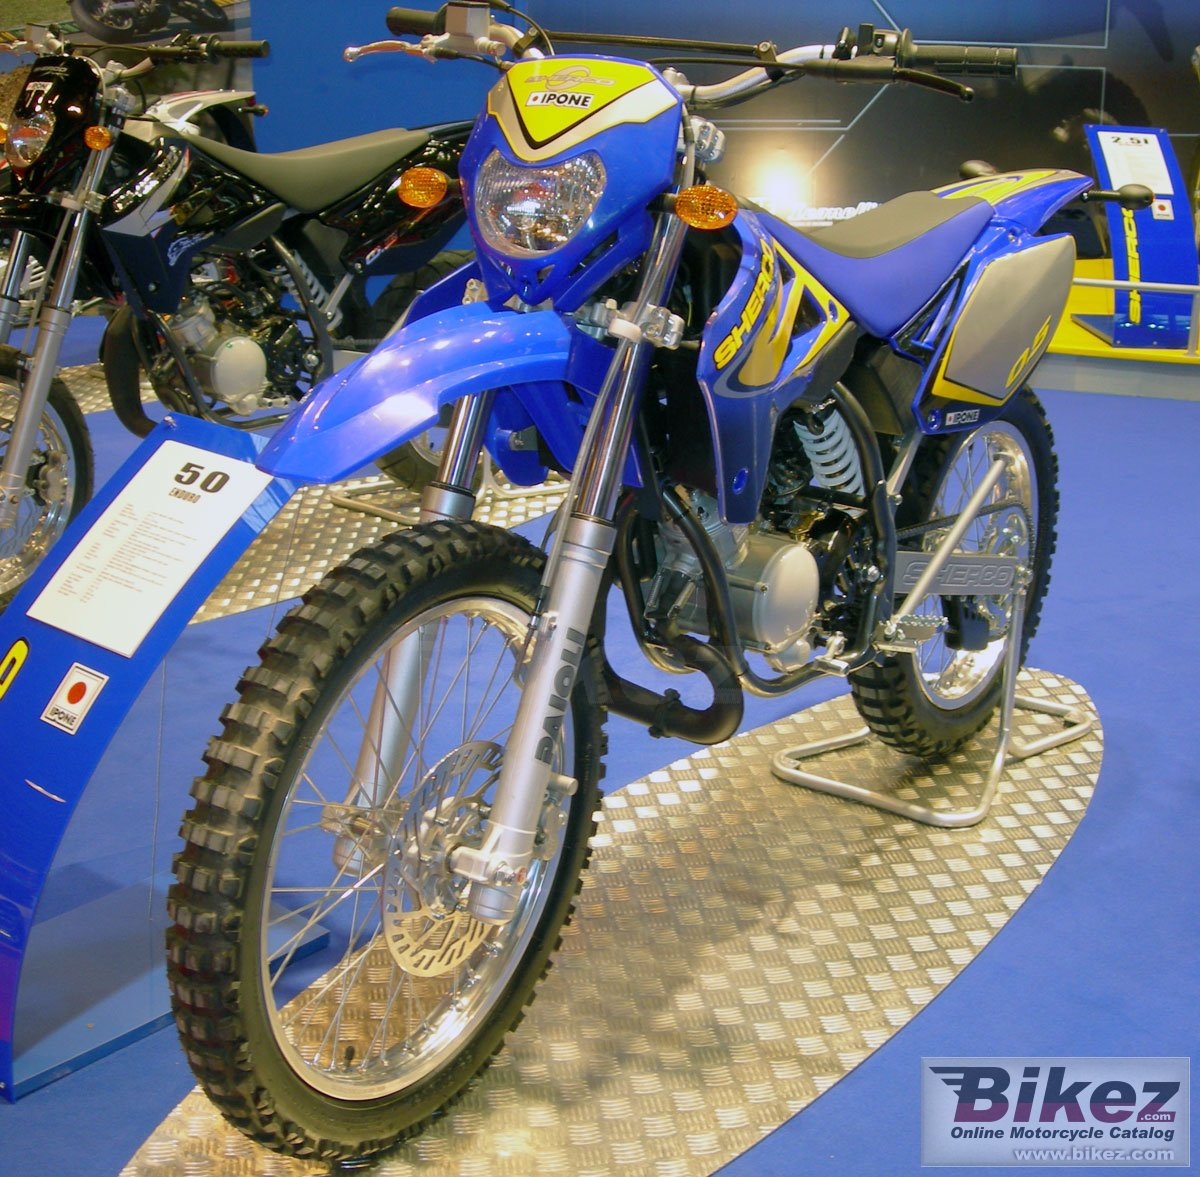 Big Sherco ipone 50 cc supermotard picture and wallpaper from Bikez.com